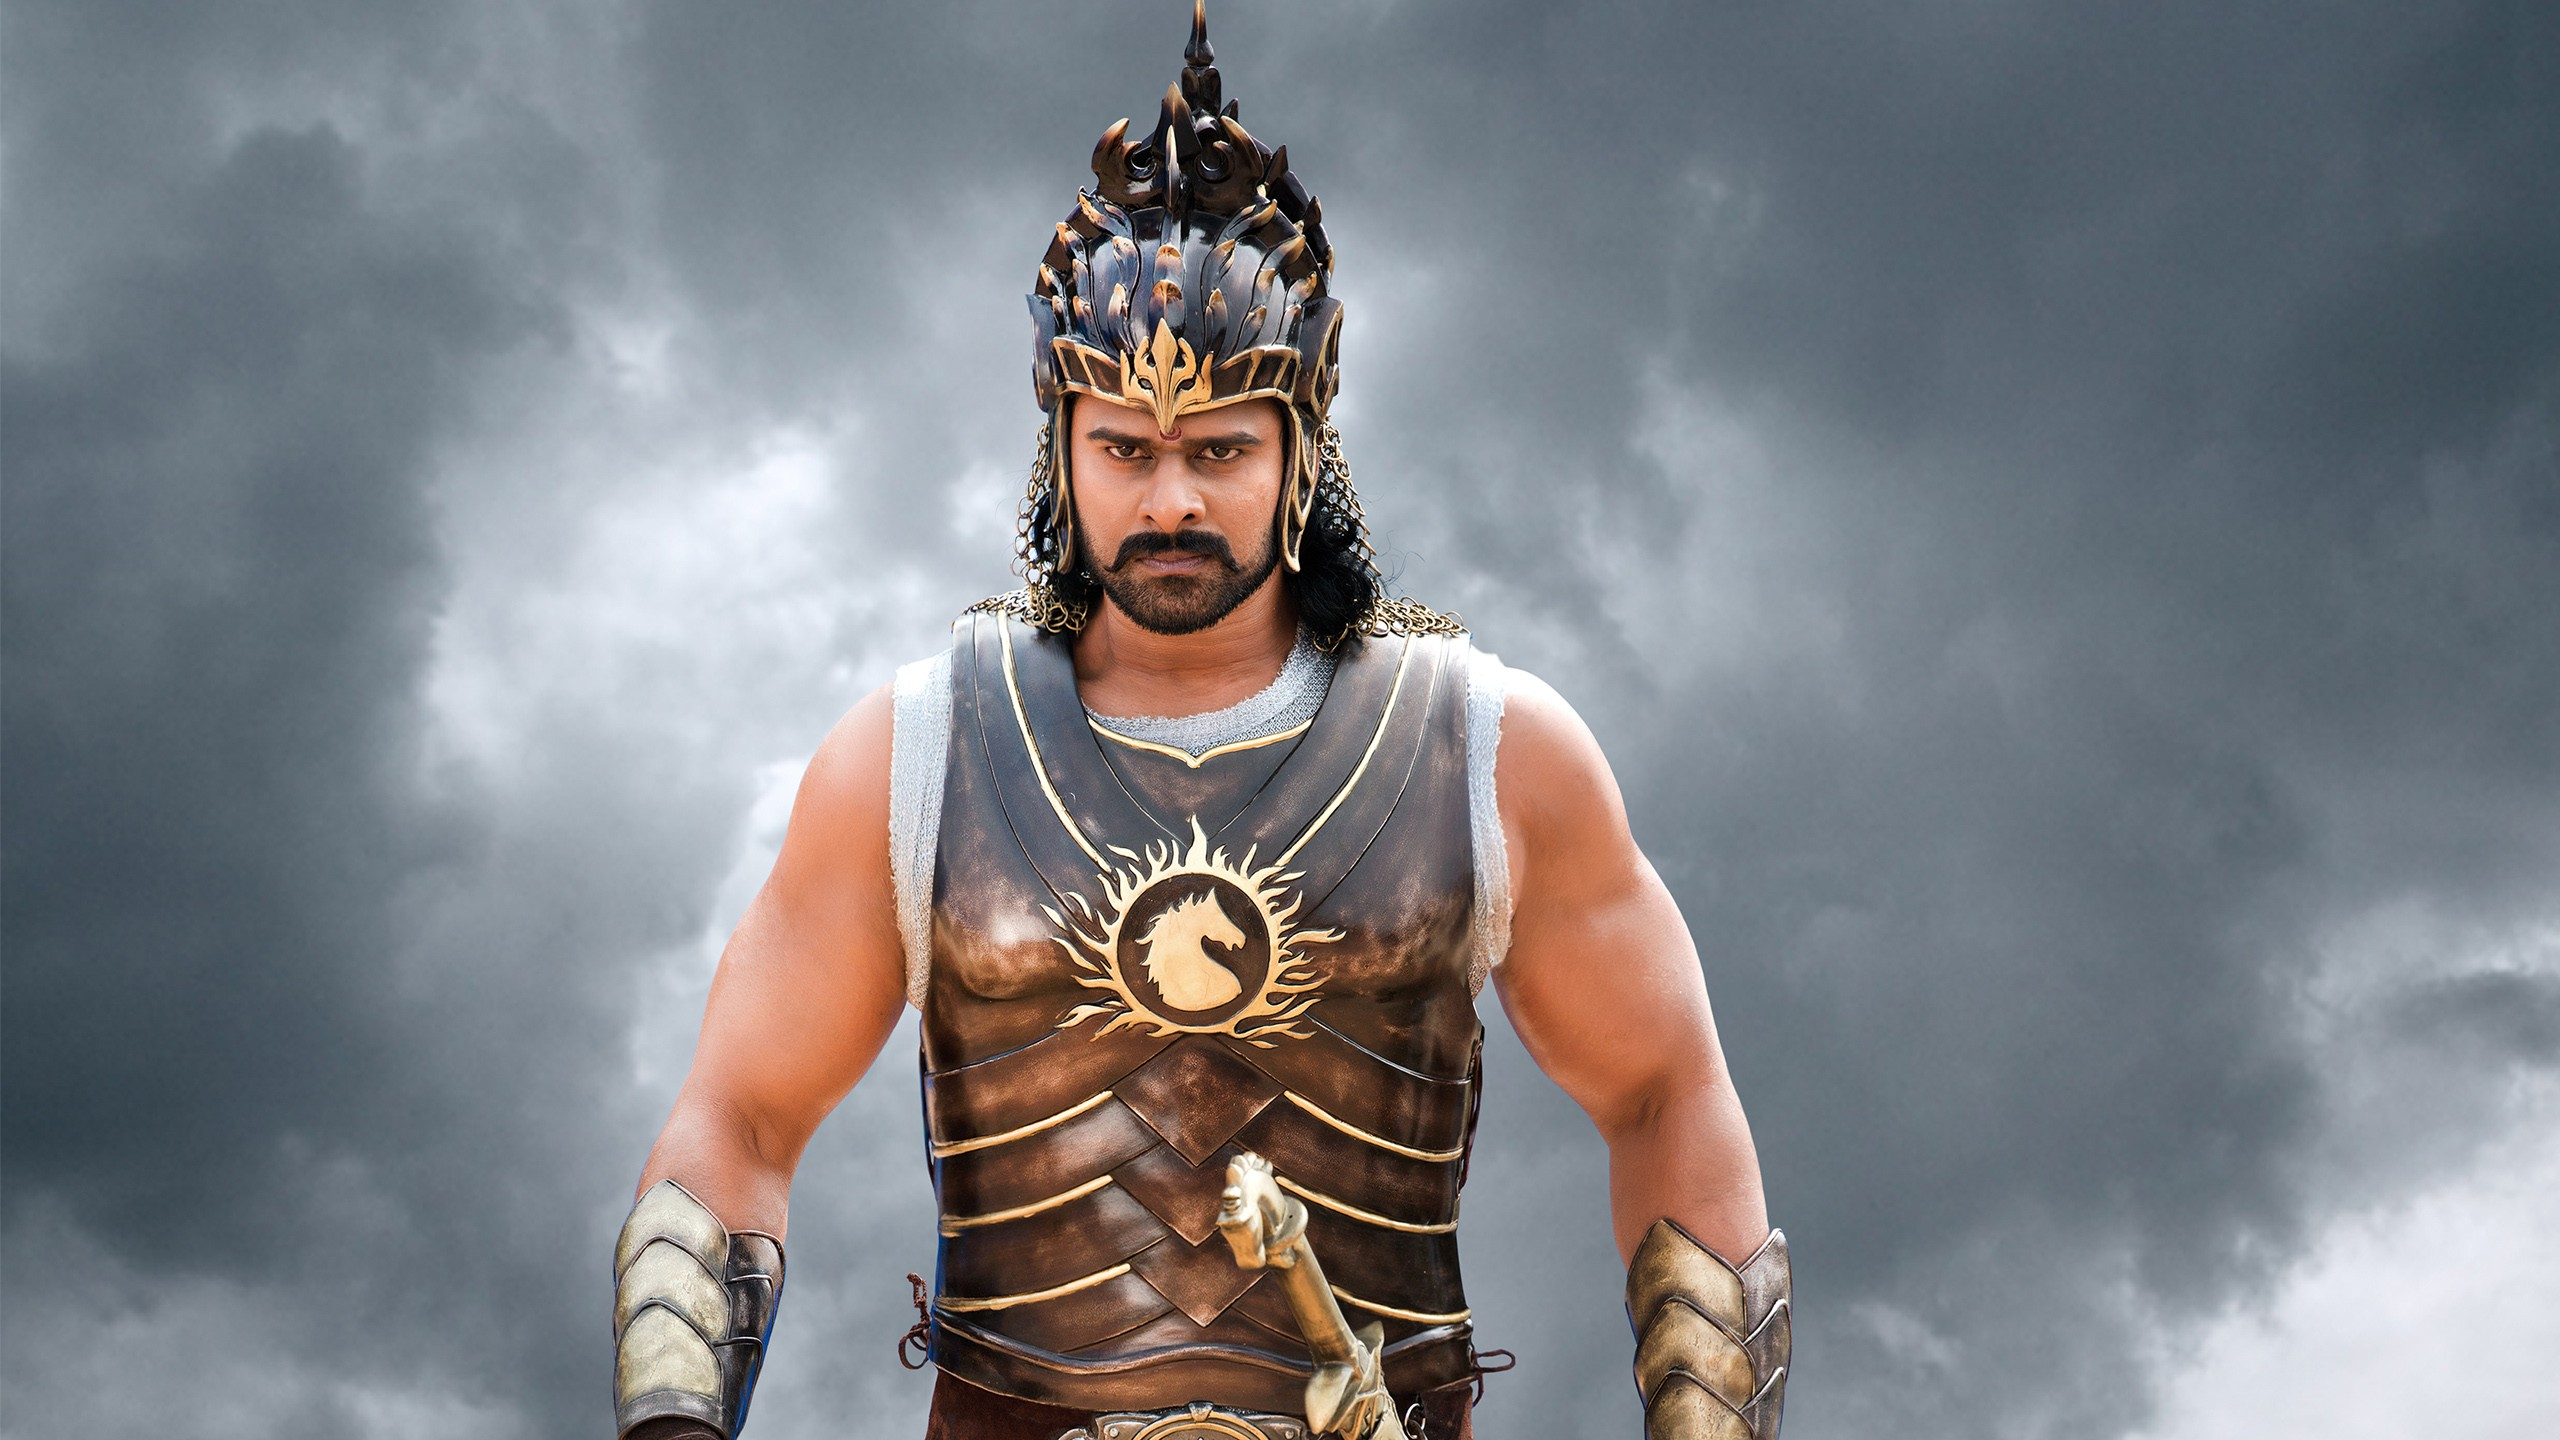 Prabhas Wallpapers Free Download Mobile: Download HD Wallpaper For Free